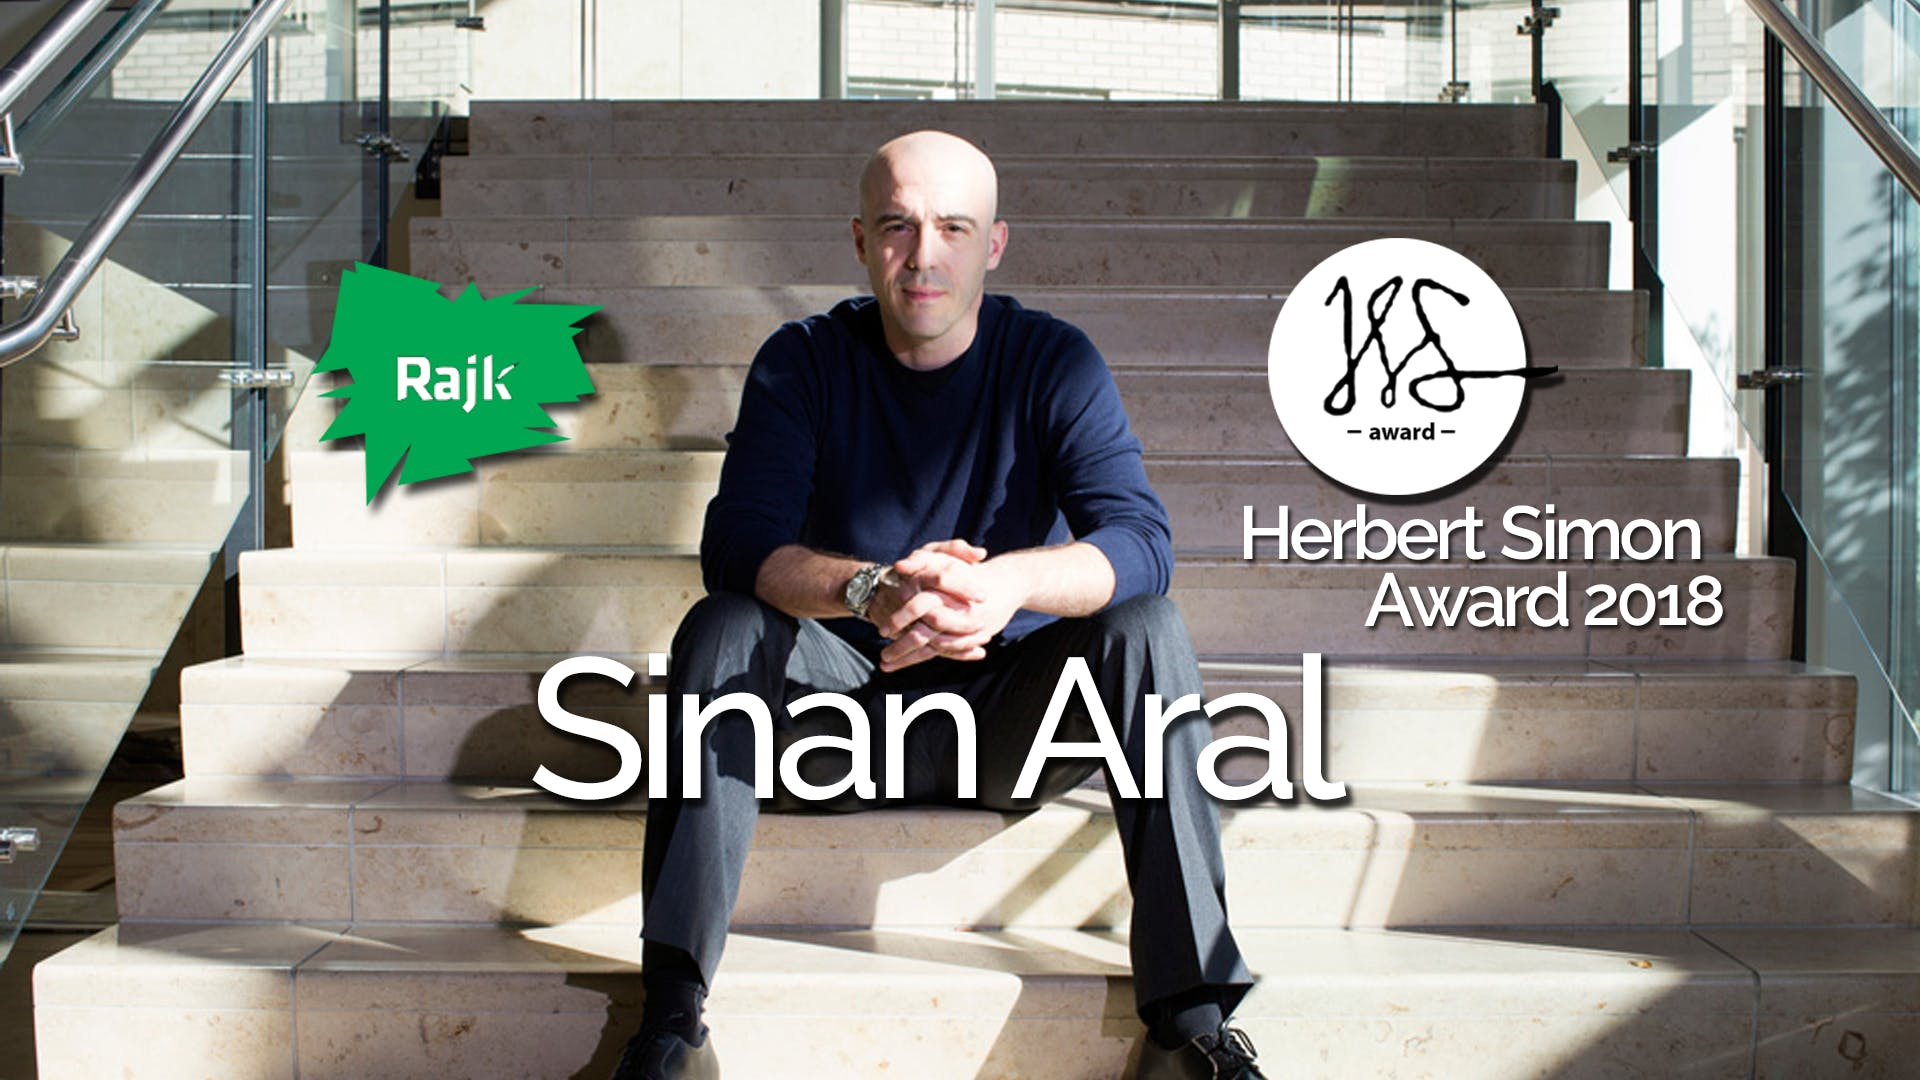 Sinan Aral Simon Award Ceremony and Lecture